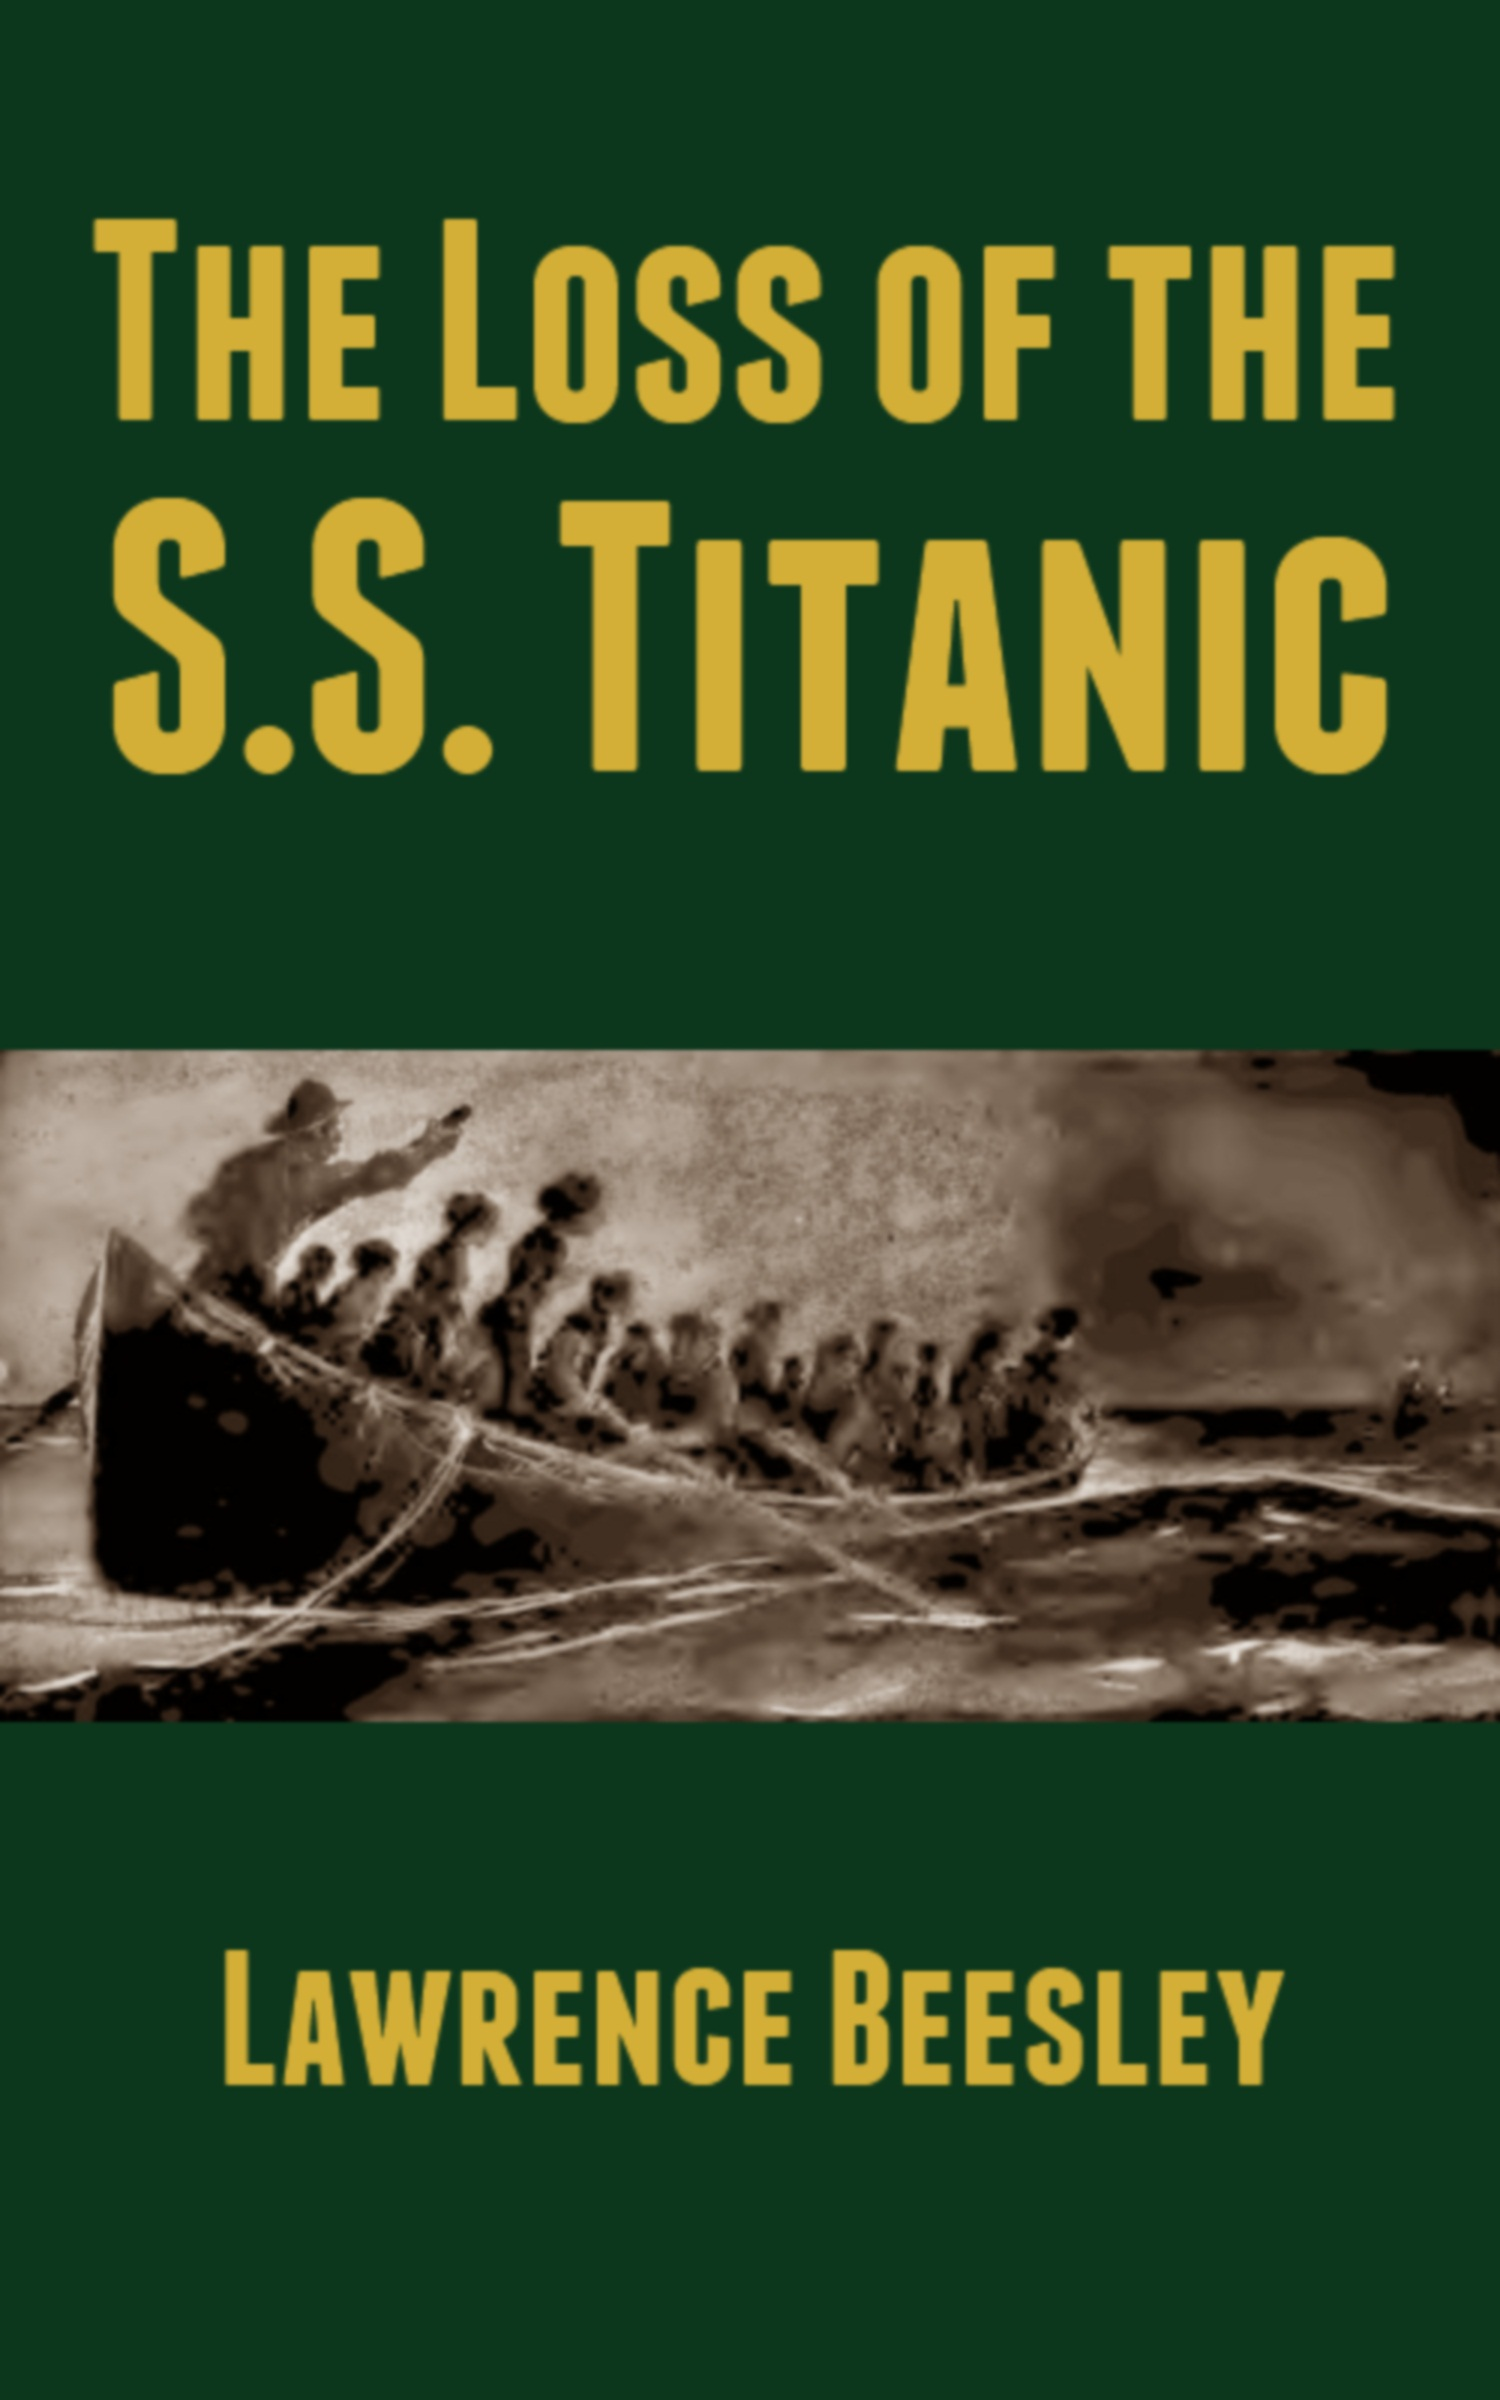 The Loss of the S.S. Titanic By: Lawrence Beesley